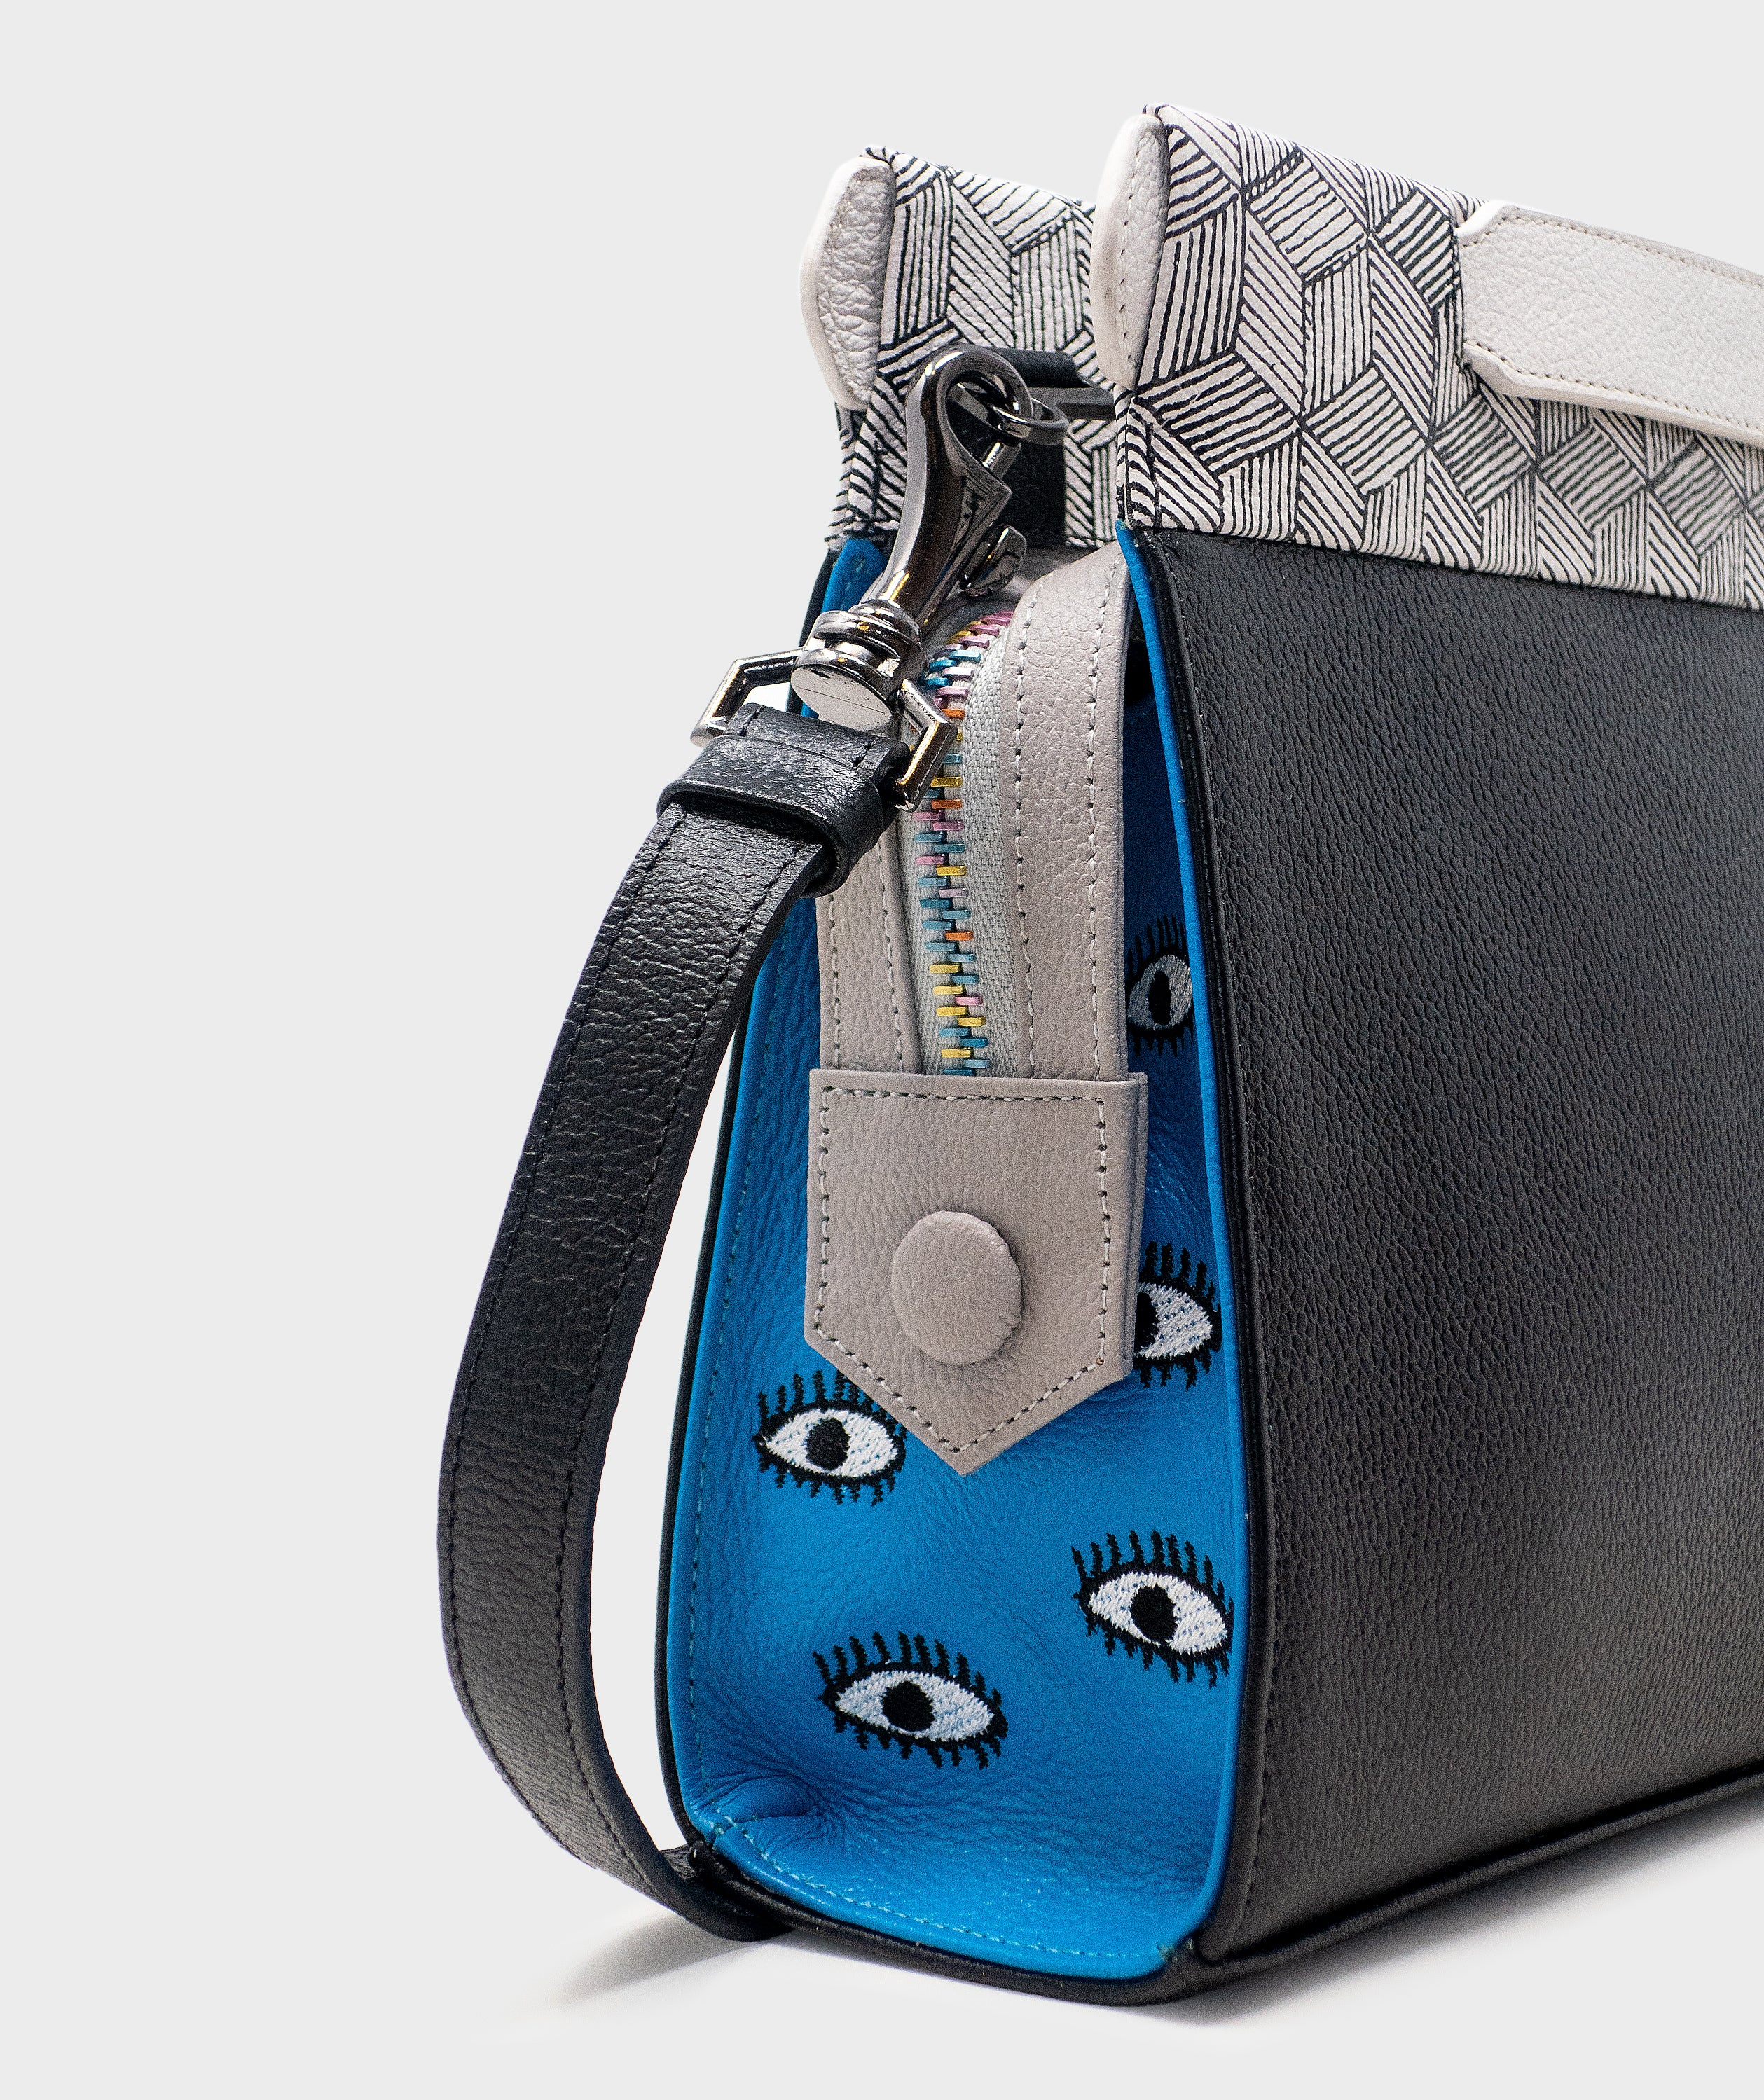 Vali Crossbody Handbag - Small